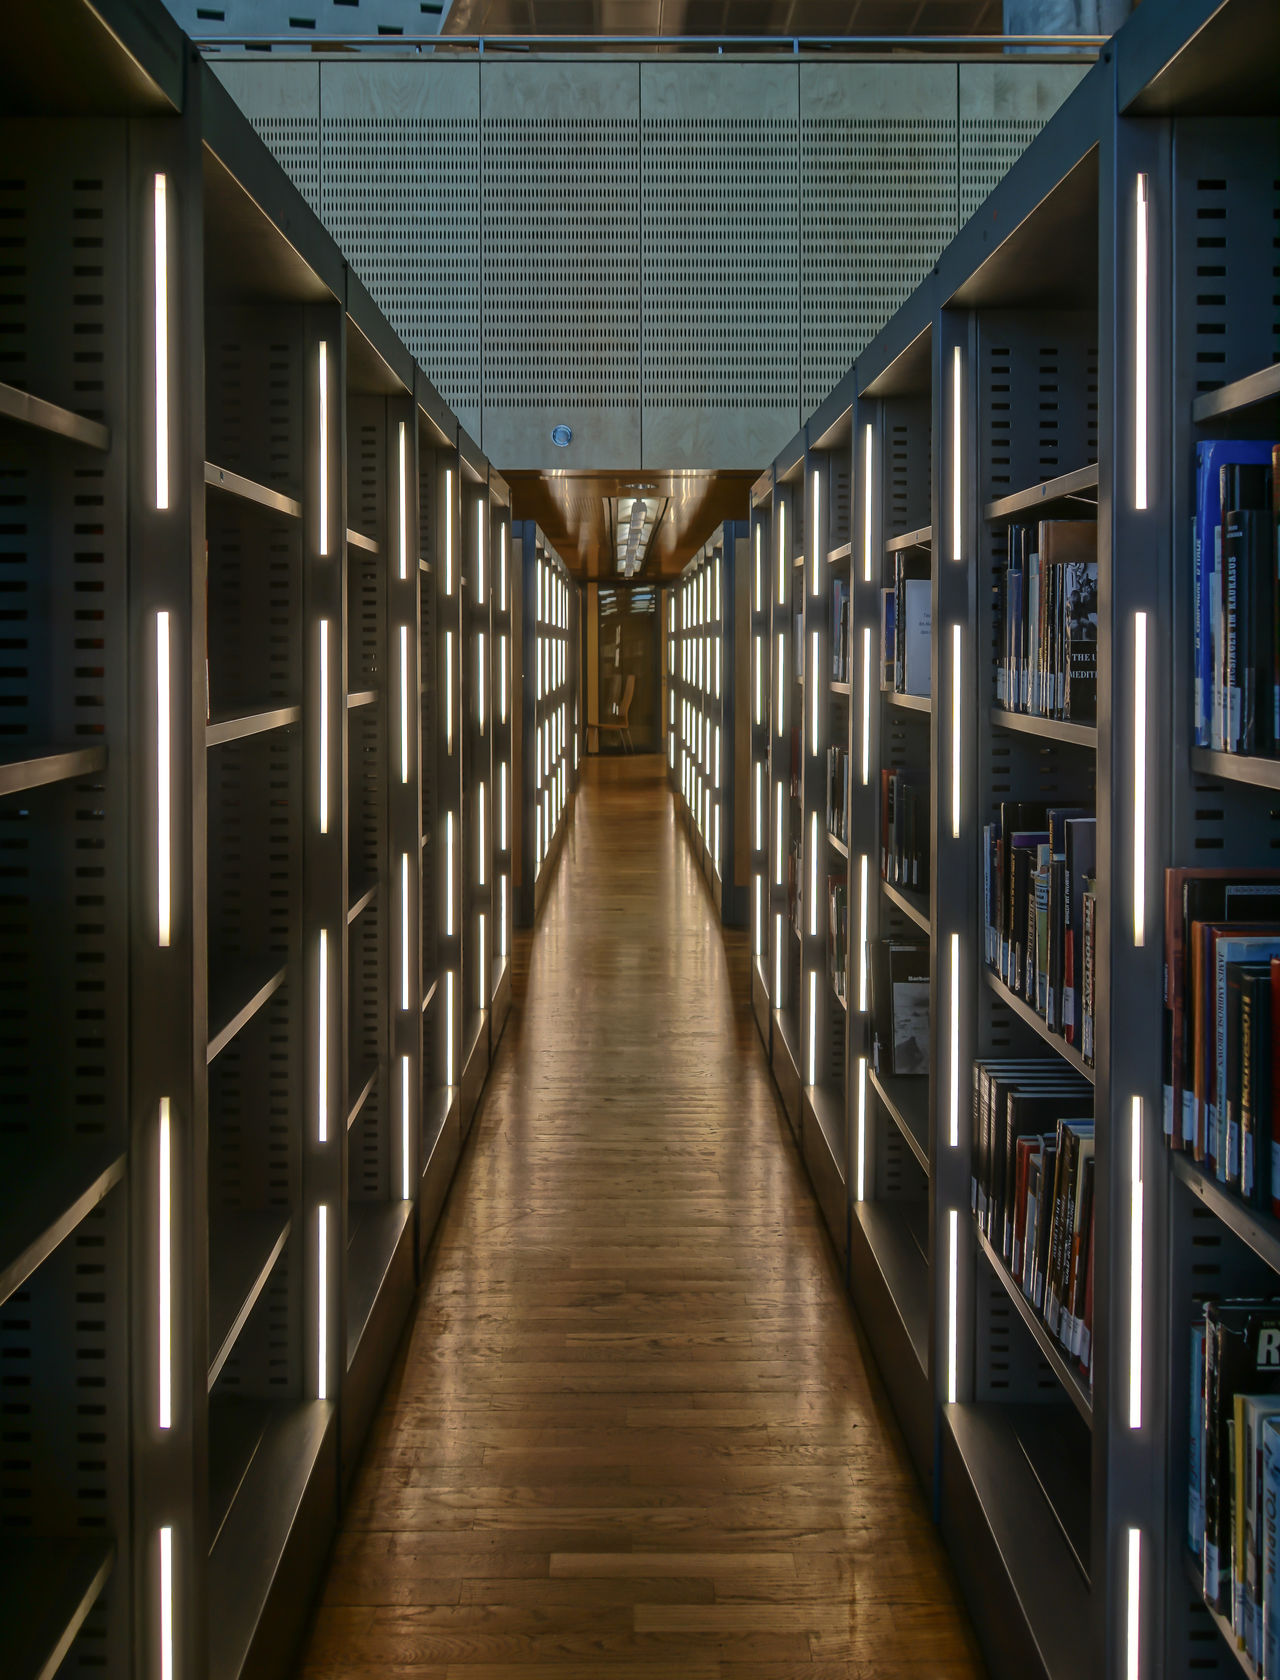 Abundance Arrangement Bibliothek Books Bookshelf Bookstore Bücher  Bücherei Bücherregal Corridor Day Education In A Row Indoors  Library Long Modern Narrow No People Order Regal Shelf The Way Forward